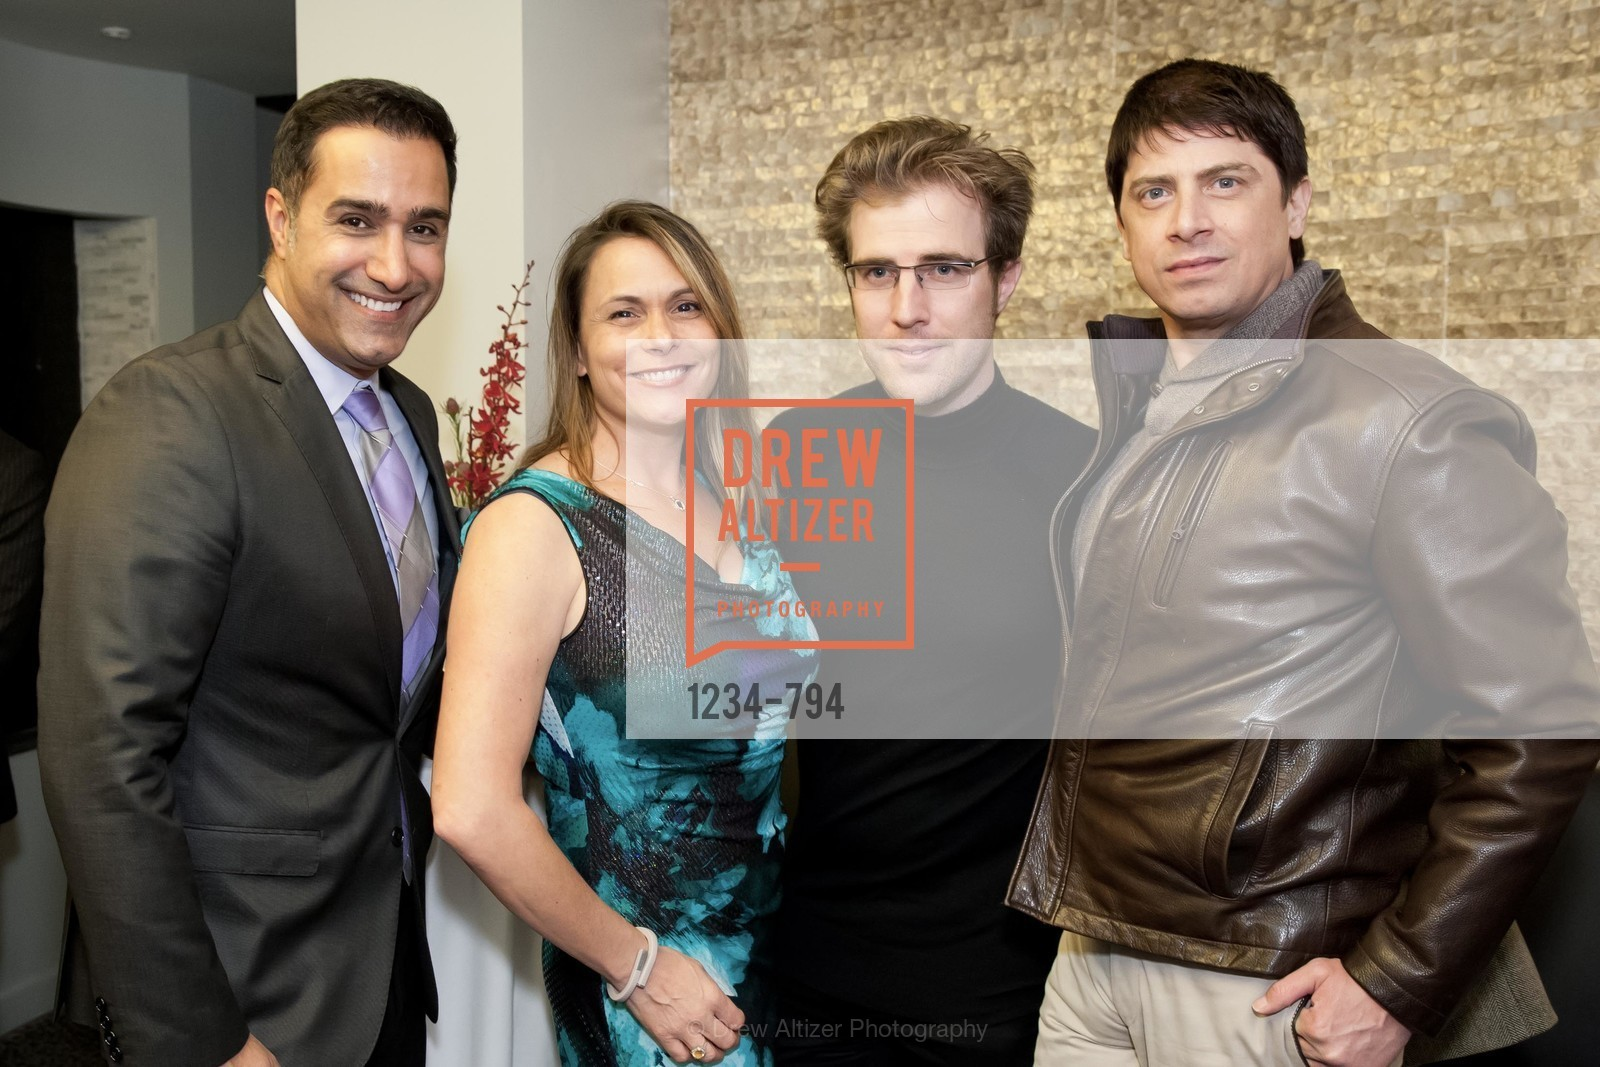 Johnny Moallempour, Teresa Rodriguez, Matthew Kimball, Aubrey Brewster, EPI CENTER MedSpa Anniversary and Launch of REPLETE - Evening Celebration, US, April 21st, 2015,Drew Altizer, Drew Altizer Photography, full-service agency, private events, San Francisco photographer, photographer california